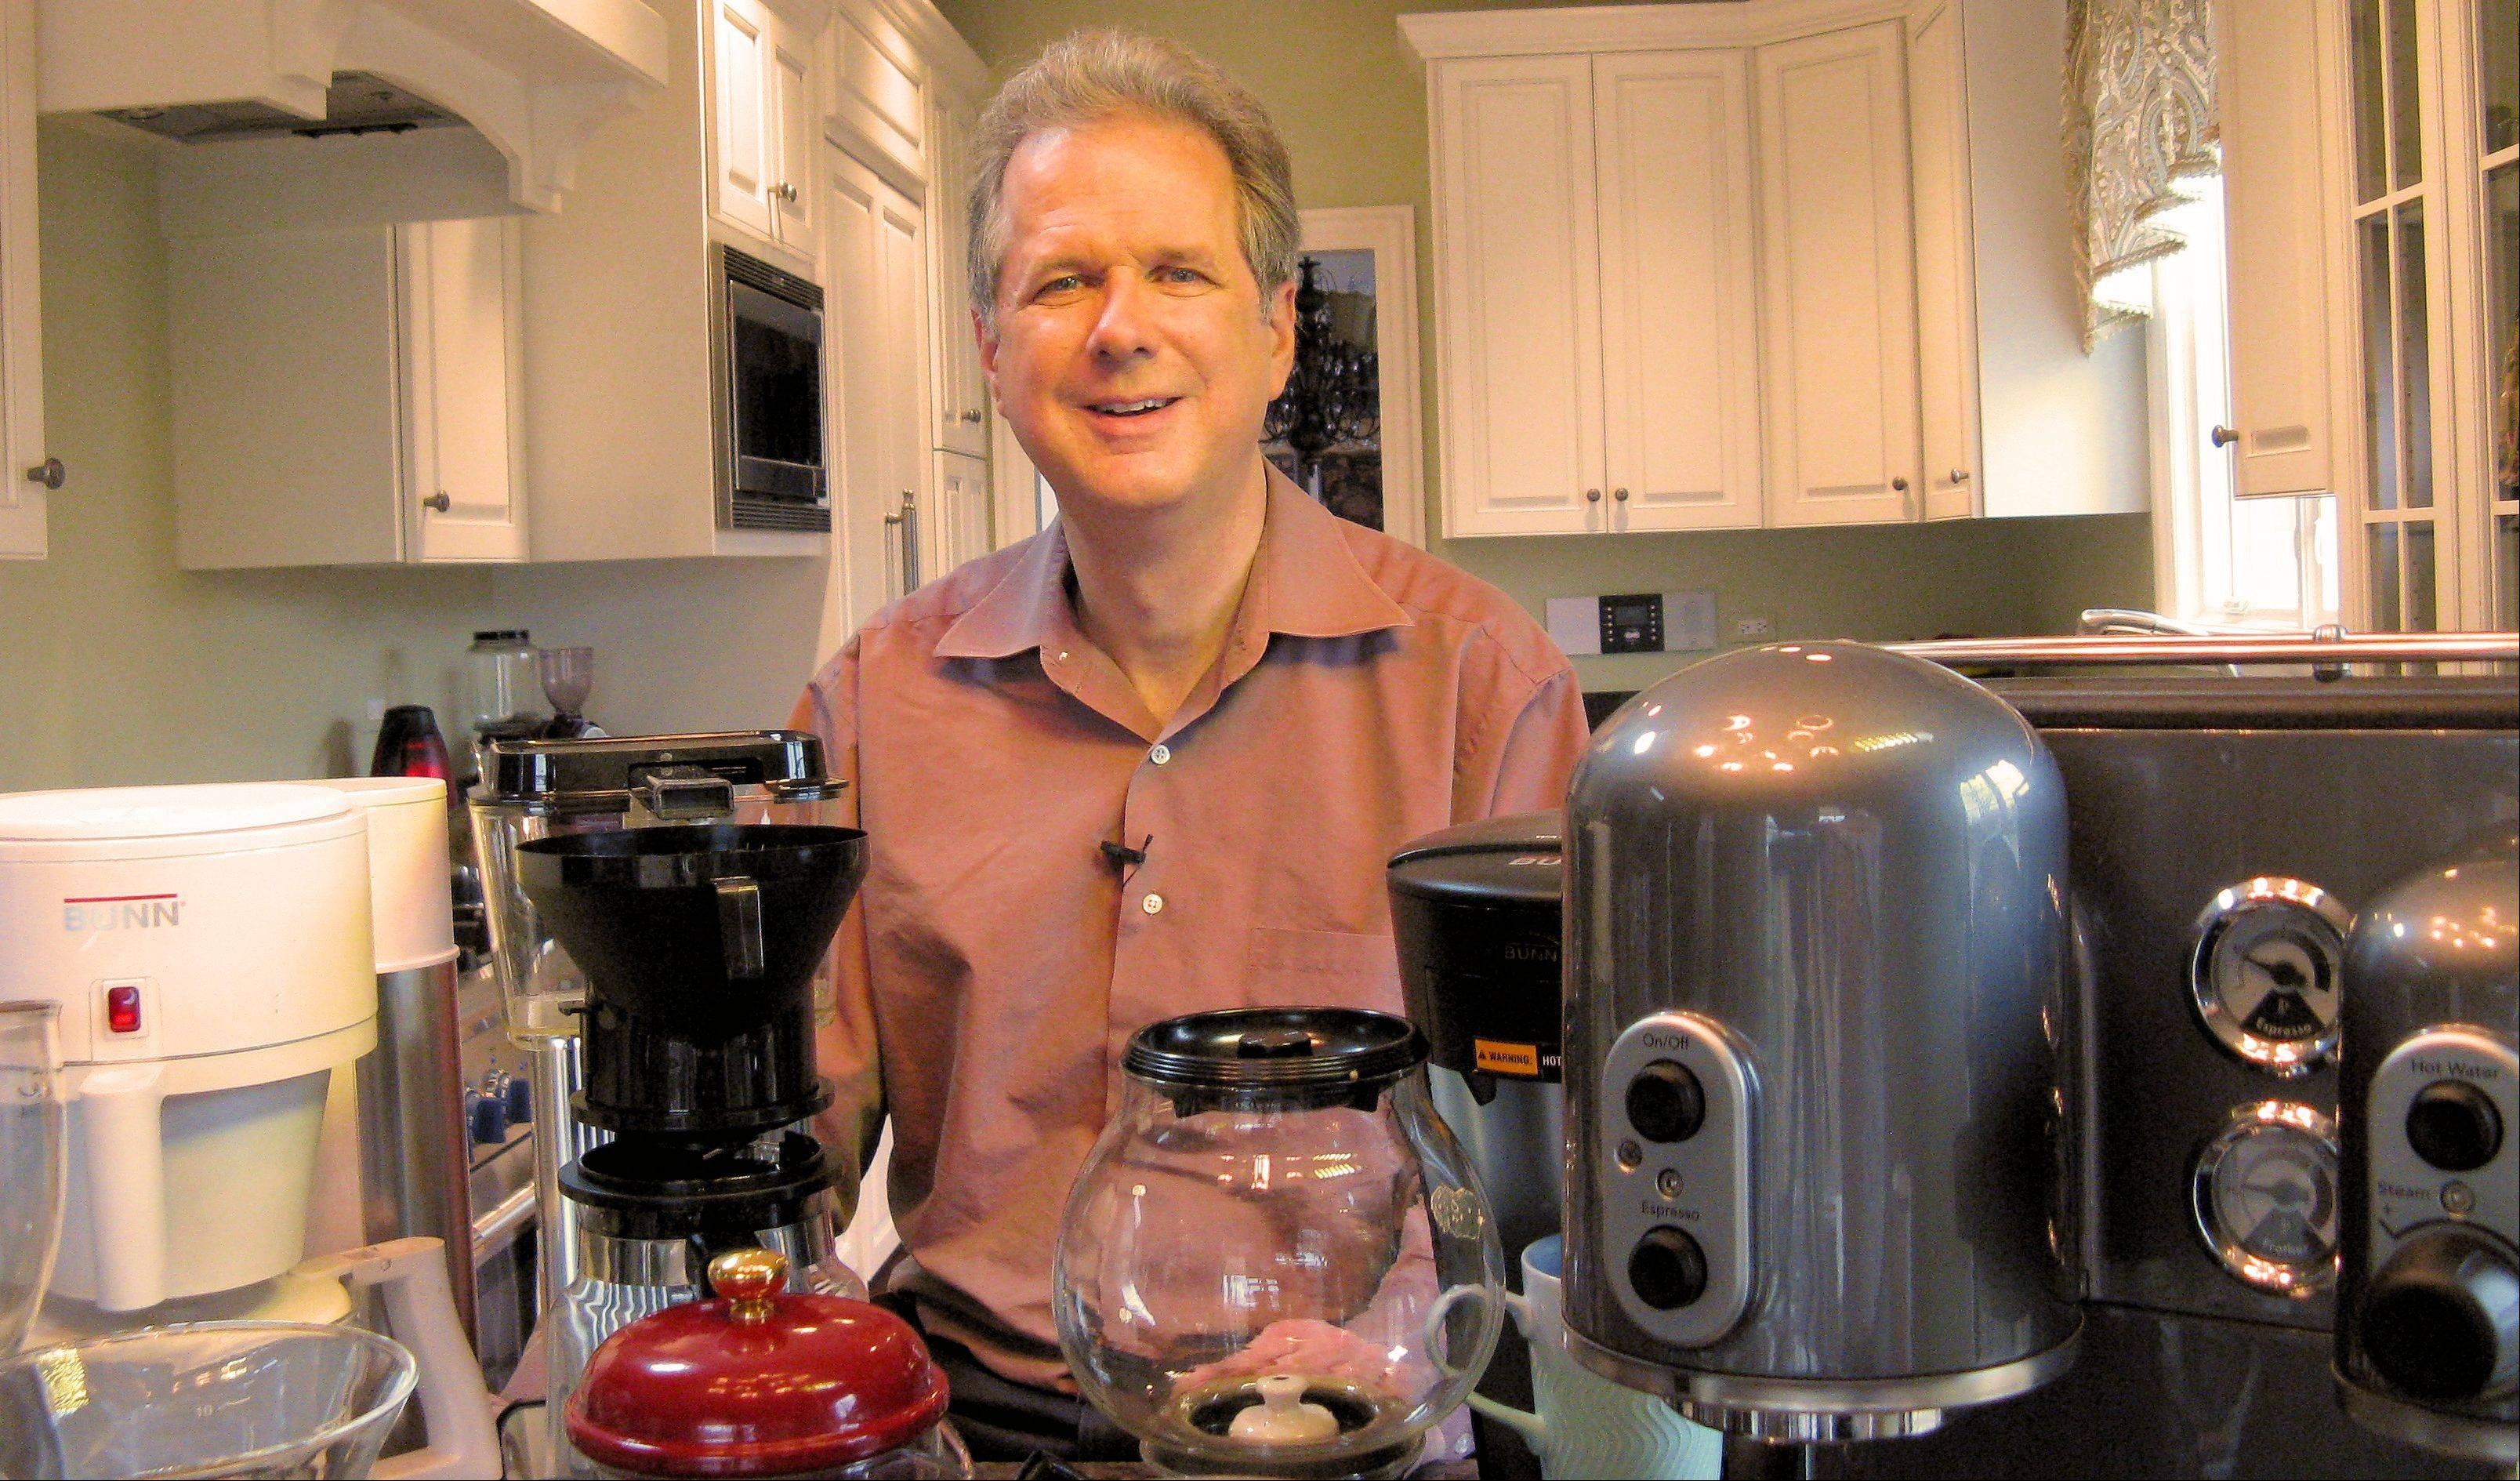 Coffee brewing expert Kevin Sinnott says it's been his dream to give consumers the opportunity to see and compare different coffees and coffee-making equipment. On Saturday, that dream comes true when Sinnott presents CoffeeCon 2012 in Warrenville.